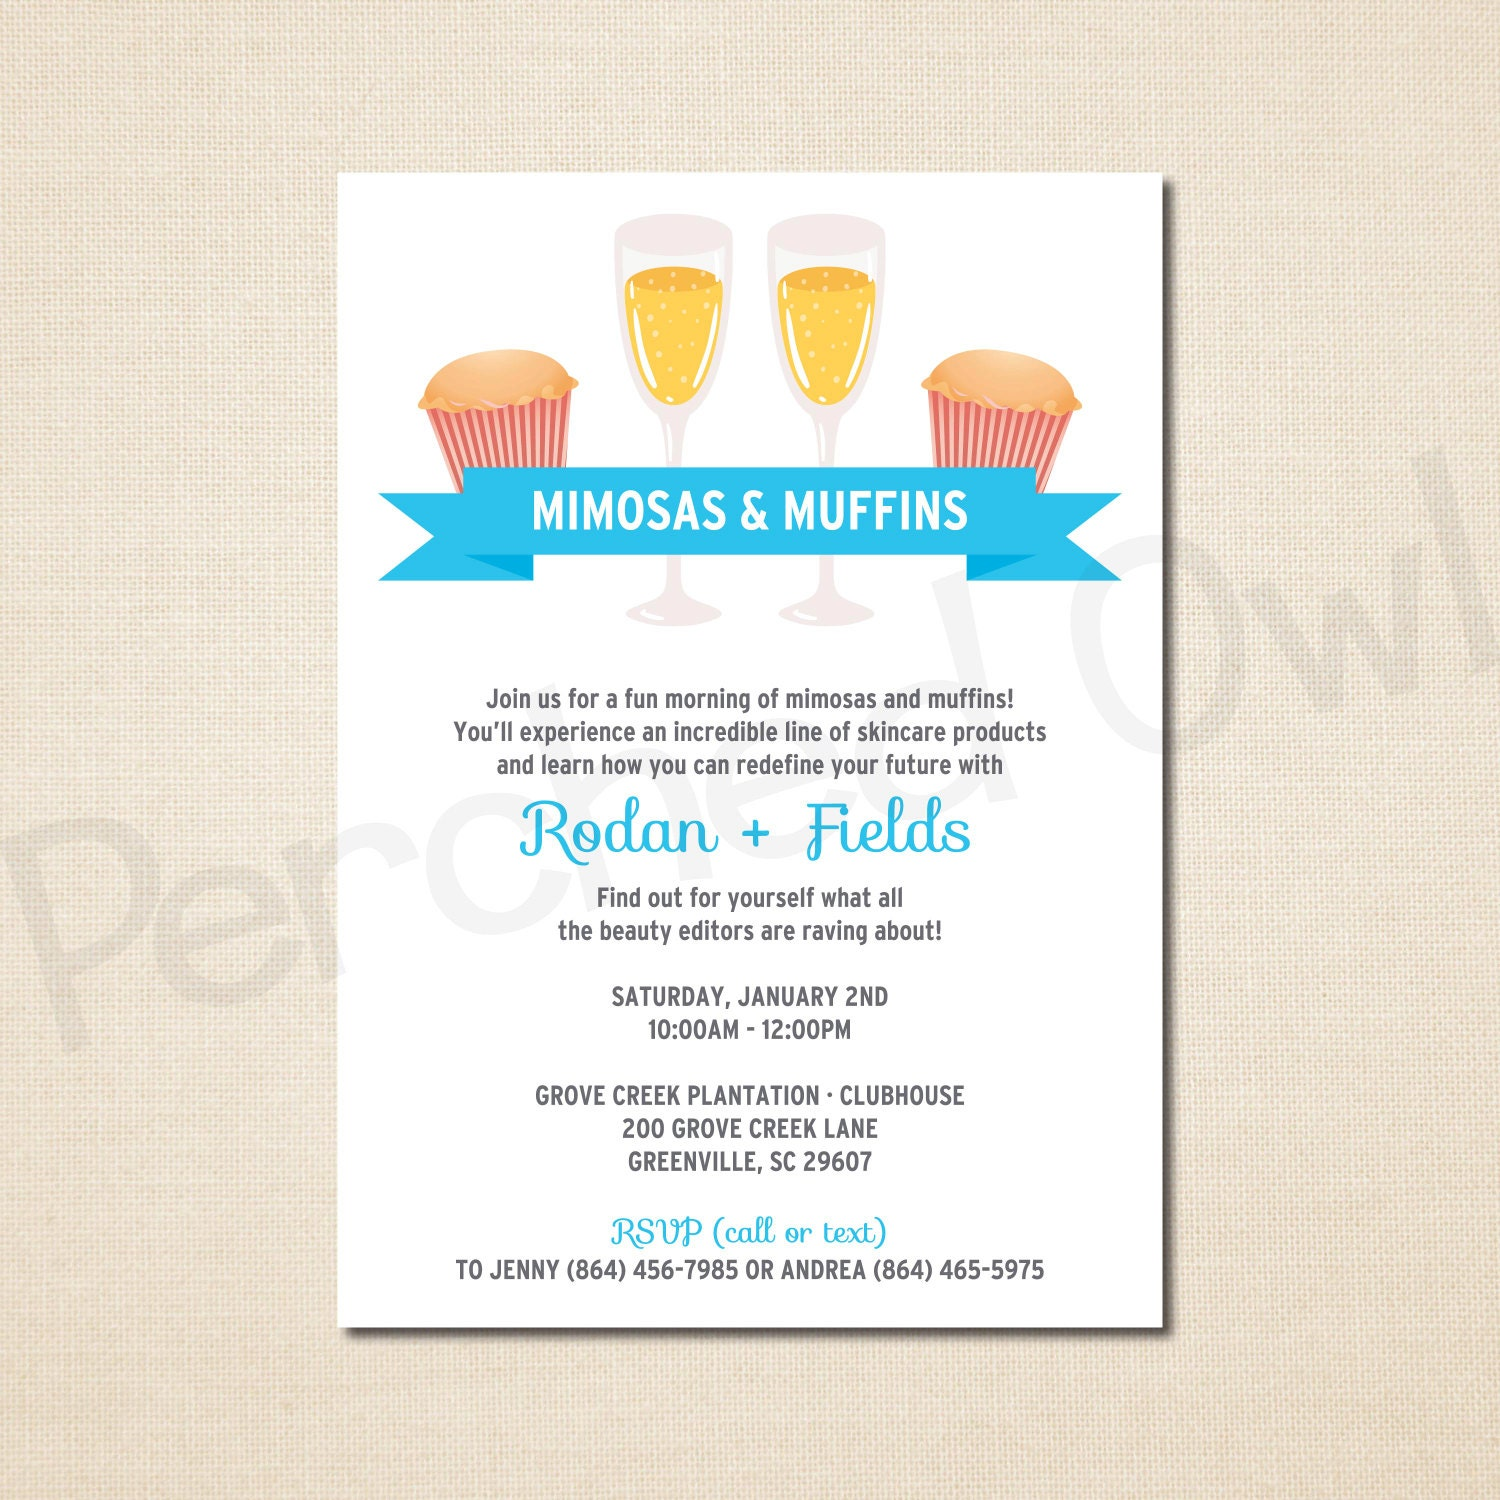 mimosas muffins invitation direct selling business